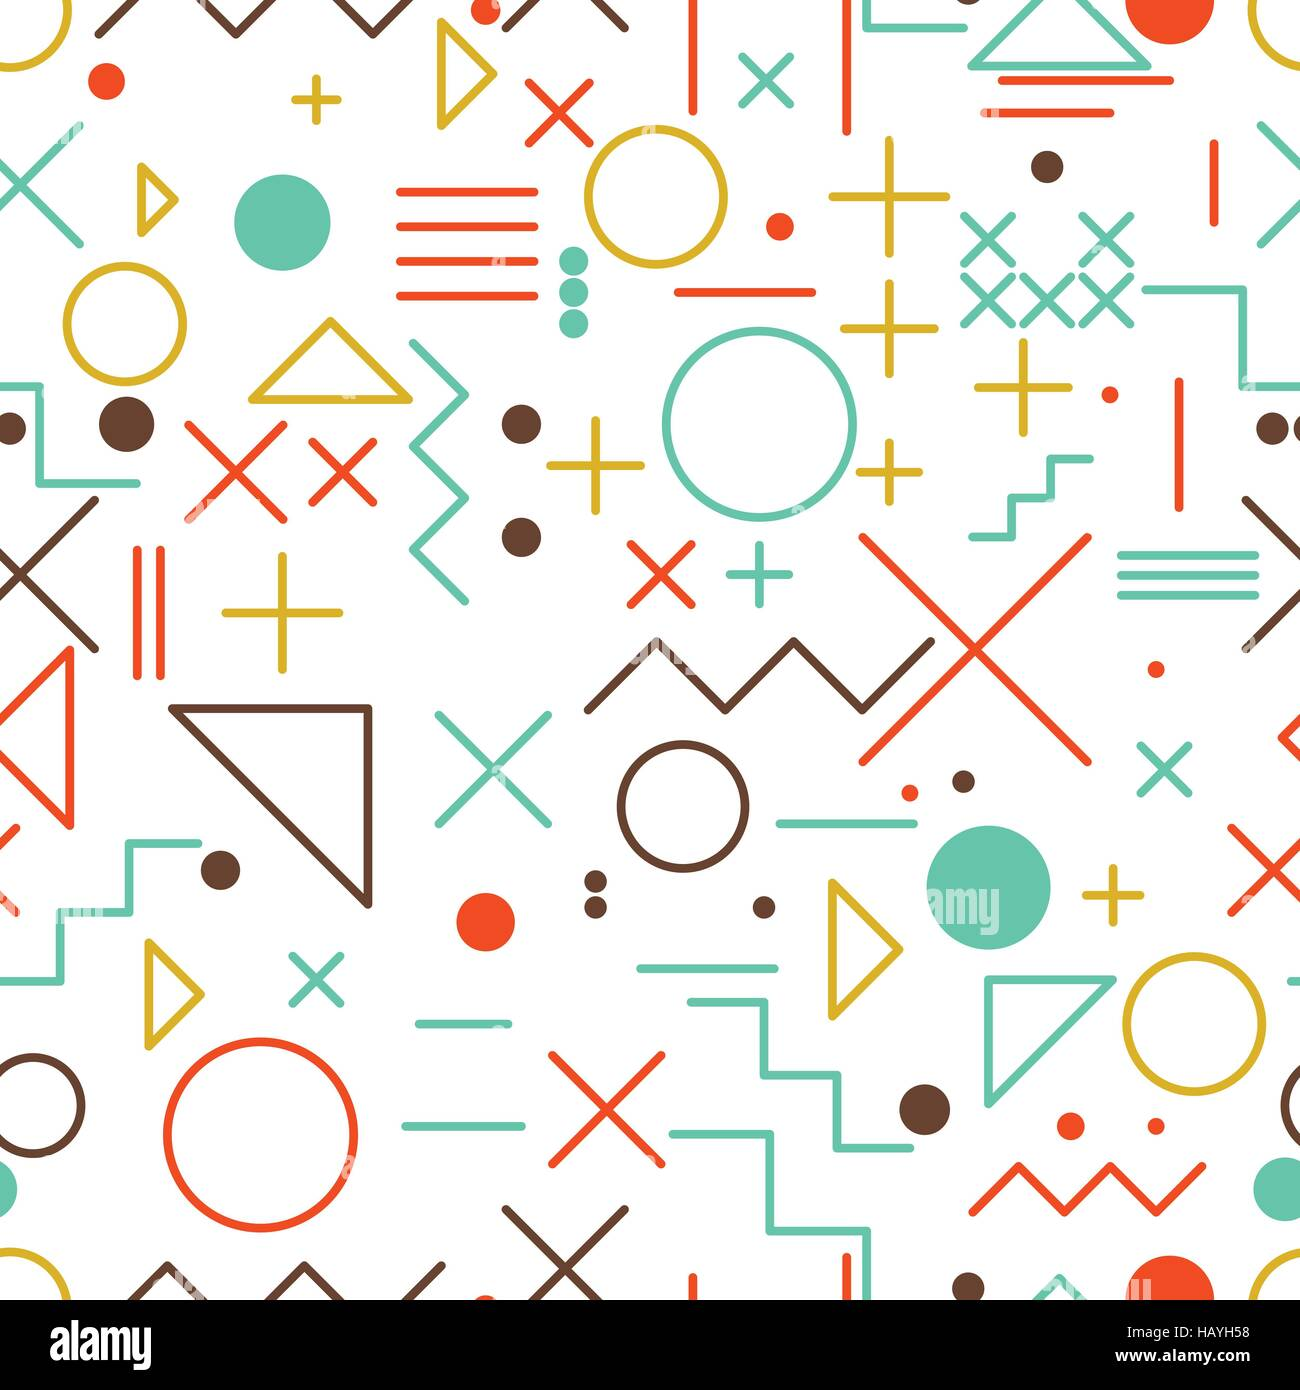 Seamless Math Symbols Vector Background Stock Photos Seamless Math